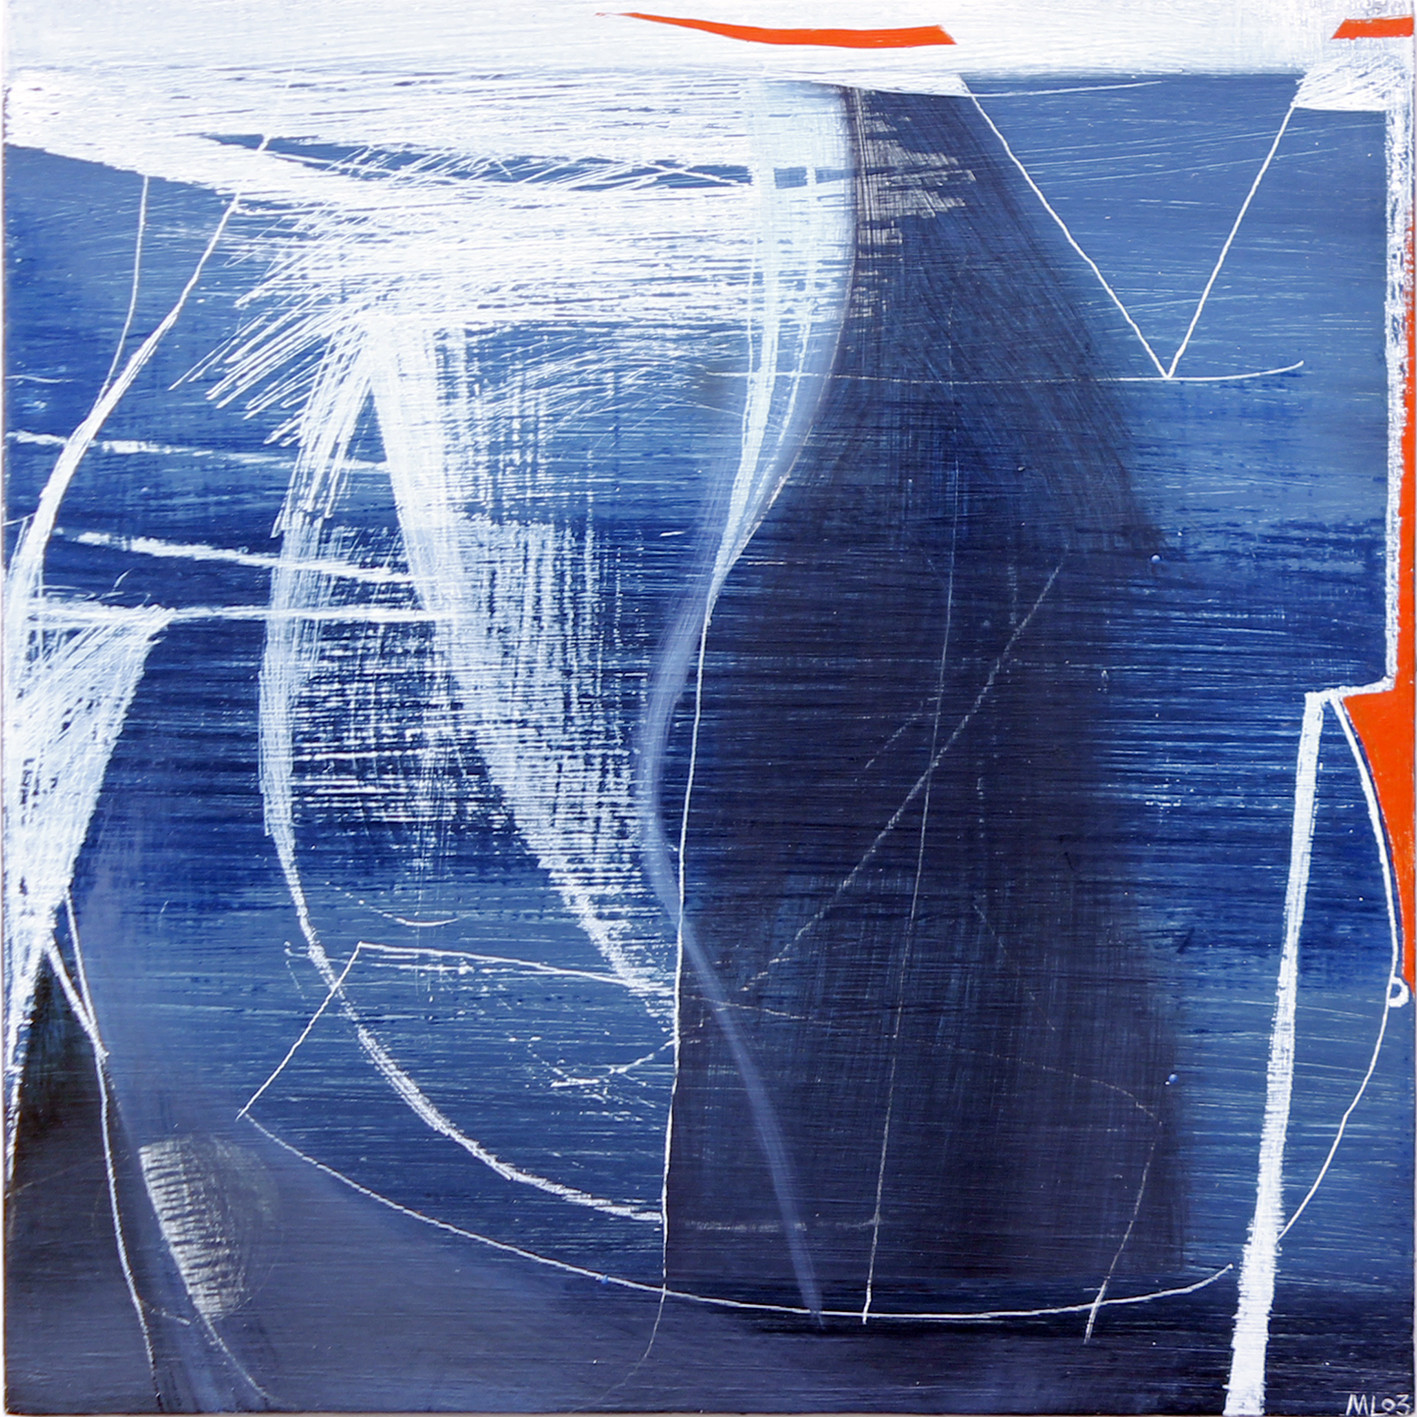 "<span class=""link fancybox-details-link""><a href=""/artists/45-matthew-lanyon/works/5835-matthew-lanyon-europa-xiv-2003/"">View Detail Page</a></span><div class=""artist""><strong>Matthew Lanyon</strong></div> 1951-2016 <div class=""title""><em>Europa XIV</em>, 2003</div> <div class=""signed_and_dated"">initialled 'ML' and dated '03' lower right, <br /> and further signed, titled and dated to reverse</div> <div class=""medium"">oil on board</div> <div class=""dimensions"">h 26.5 x w 26.5 cm<br /> h 10 3/8 x w 10 3/8 in</div><div class=""copyright_line"">© The Estate of Matthew Lanyon</div>"